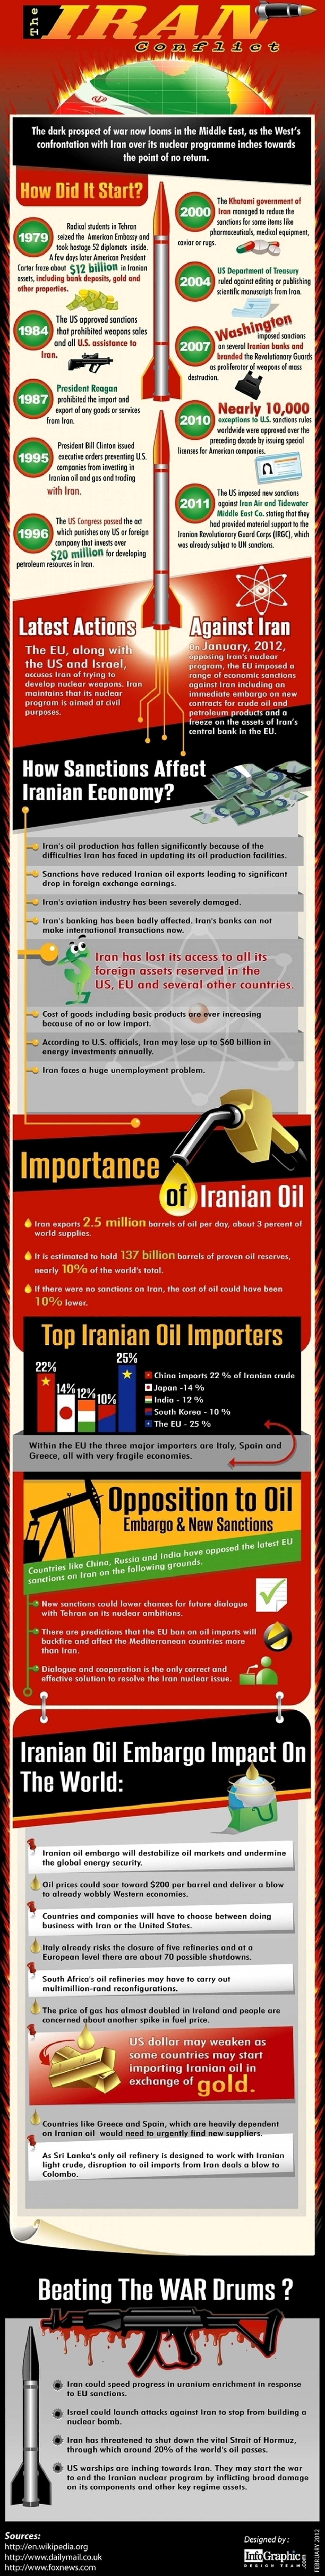 The Iran Conflict Infographic